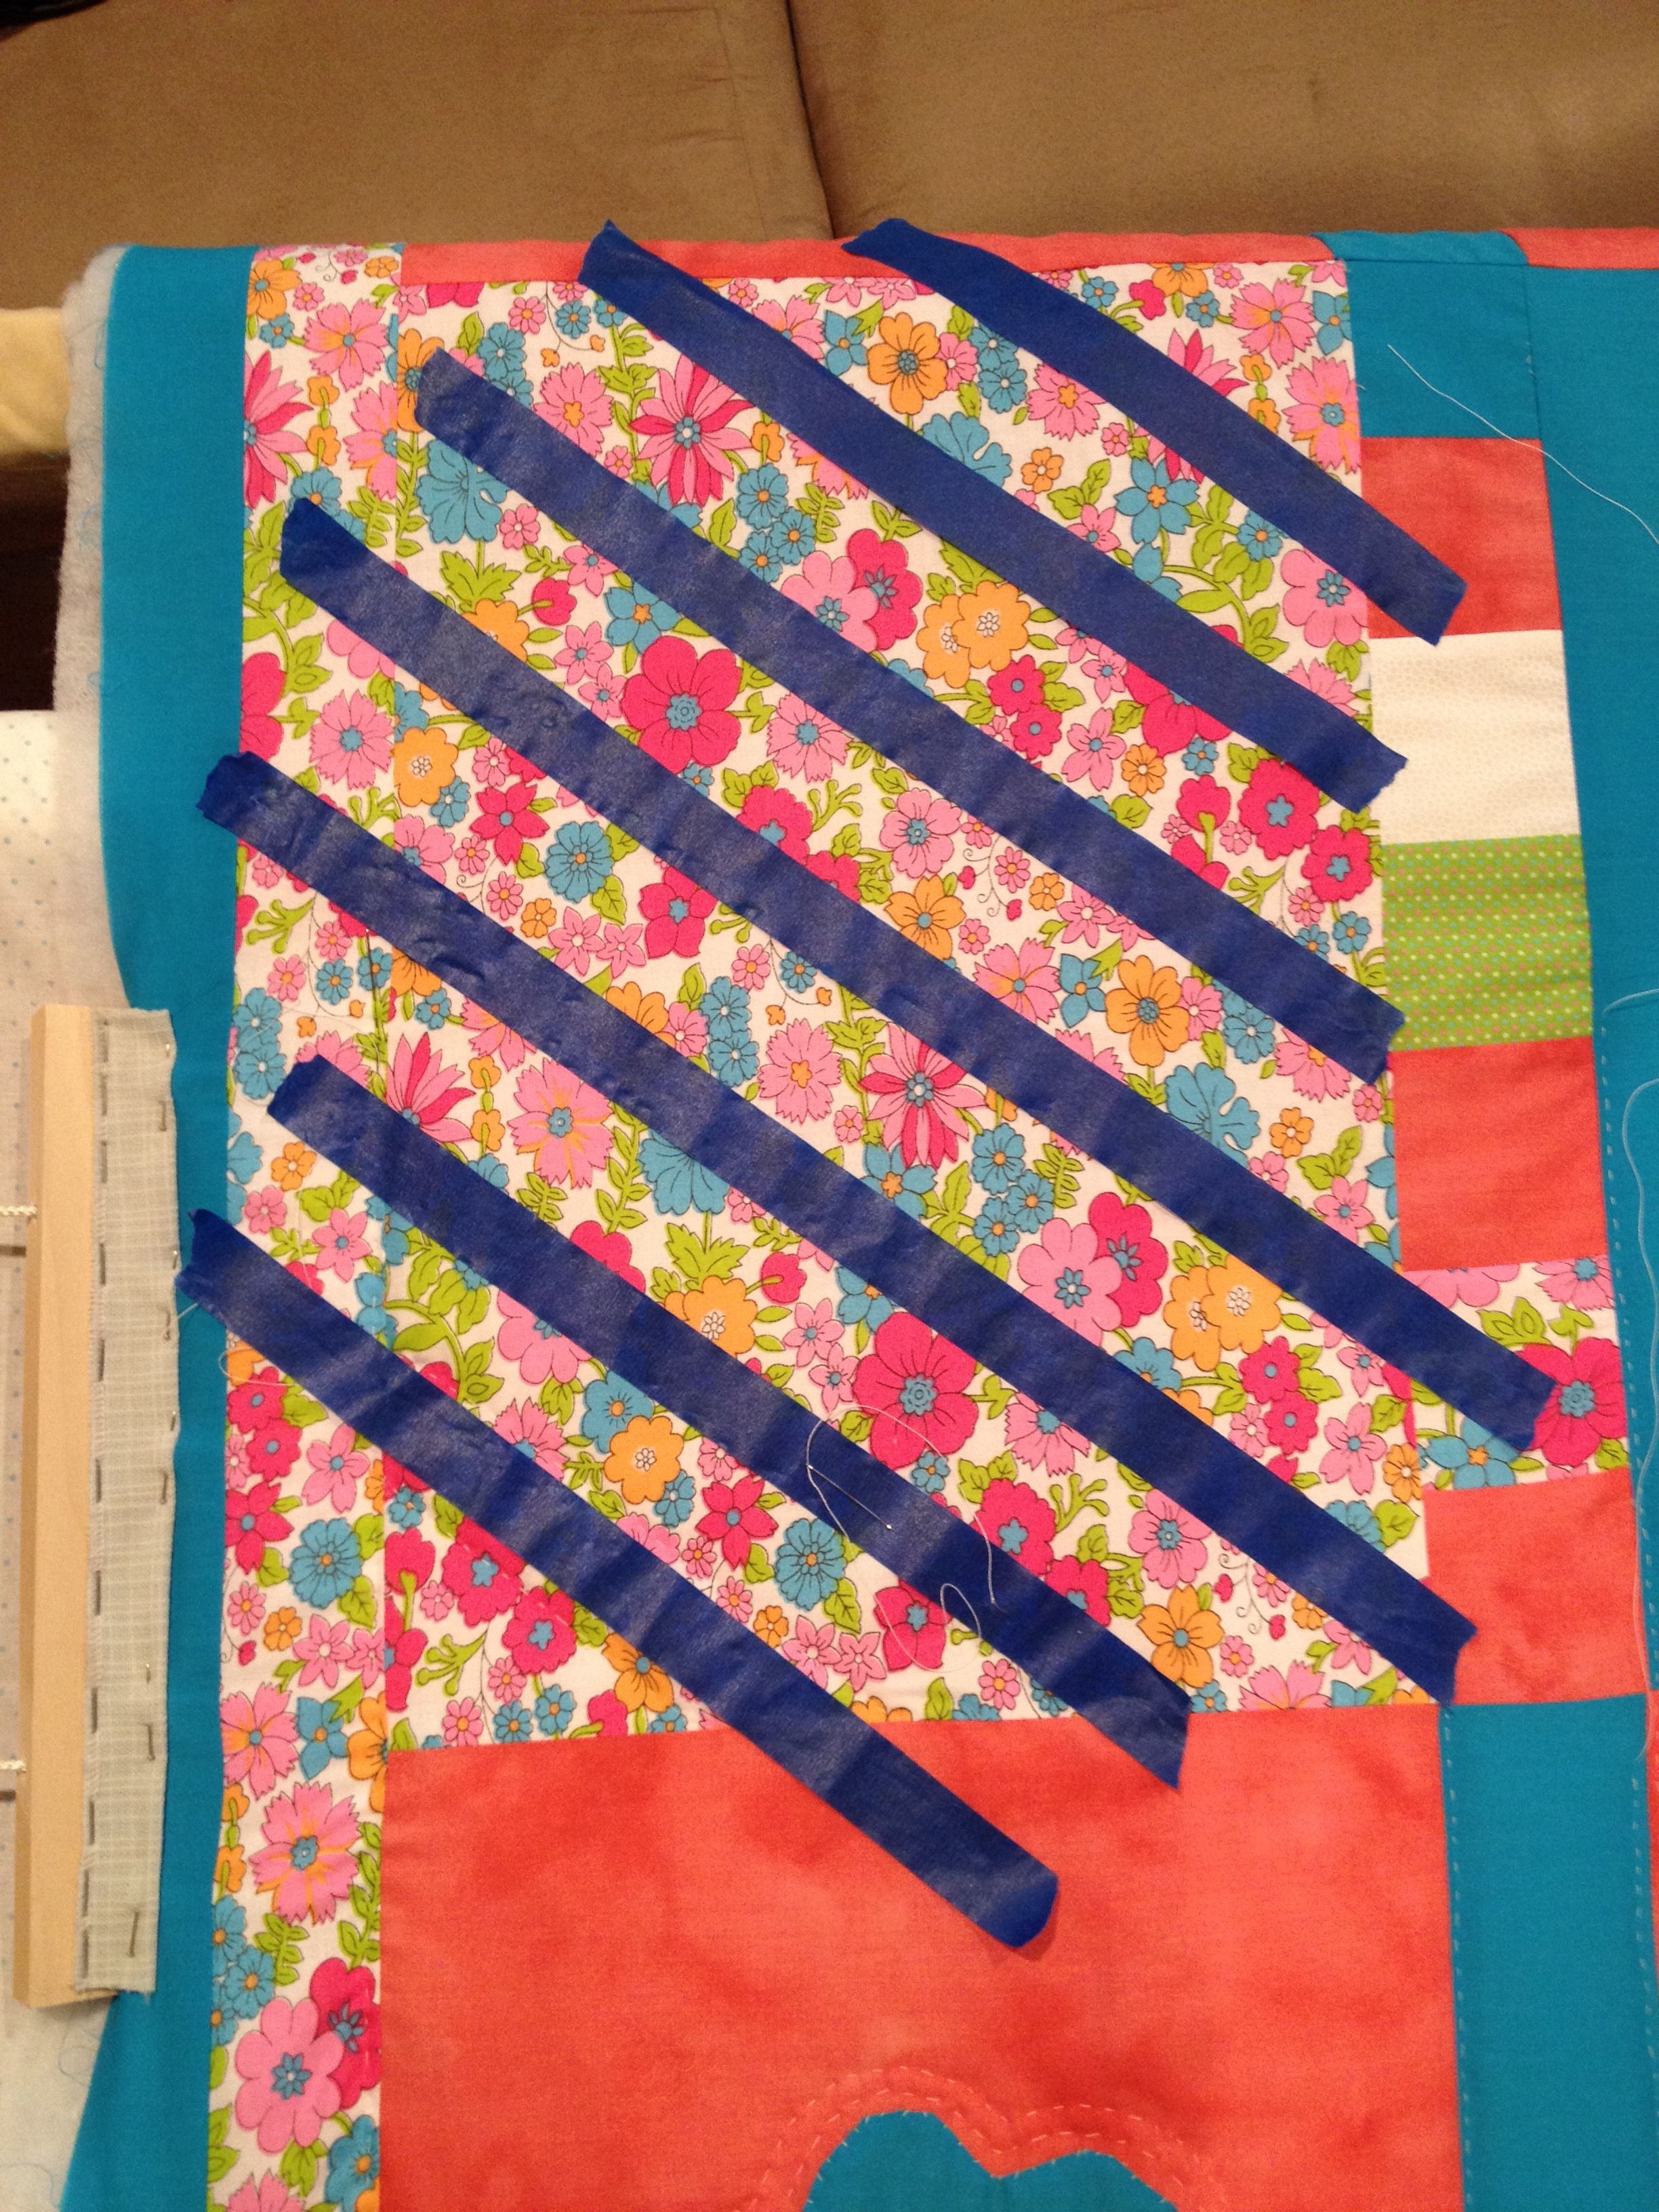 Use painters tape to mark lines to quilt instead of pencil marking. Easy to relocate to the next block. Real time saver :)